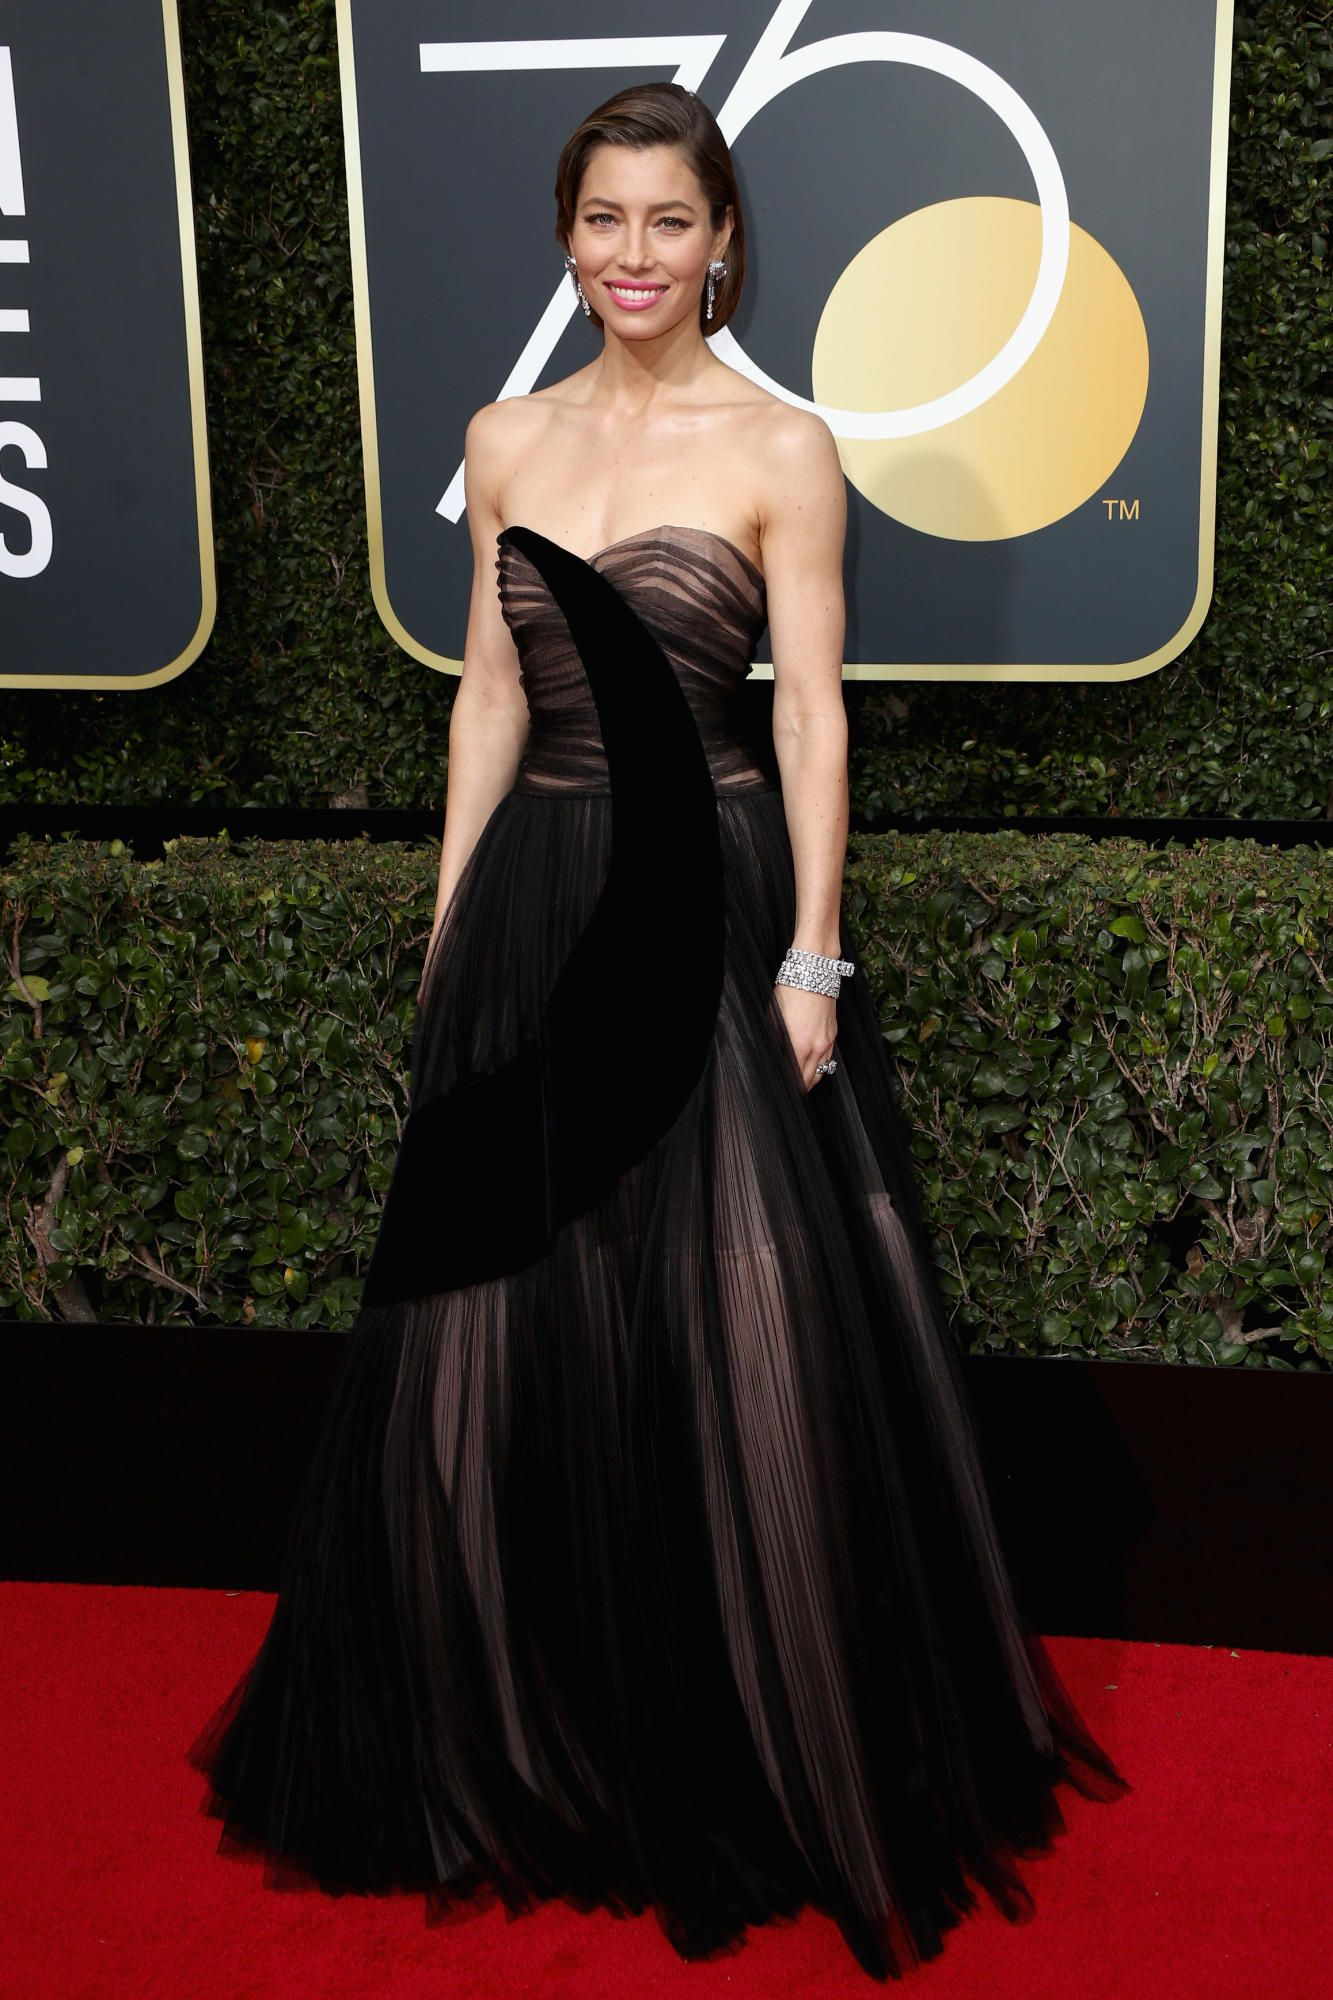 Every look from the 2018 golden globes red carpet red carpet events pinterest jessica biel - Golden globes red carpet ...